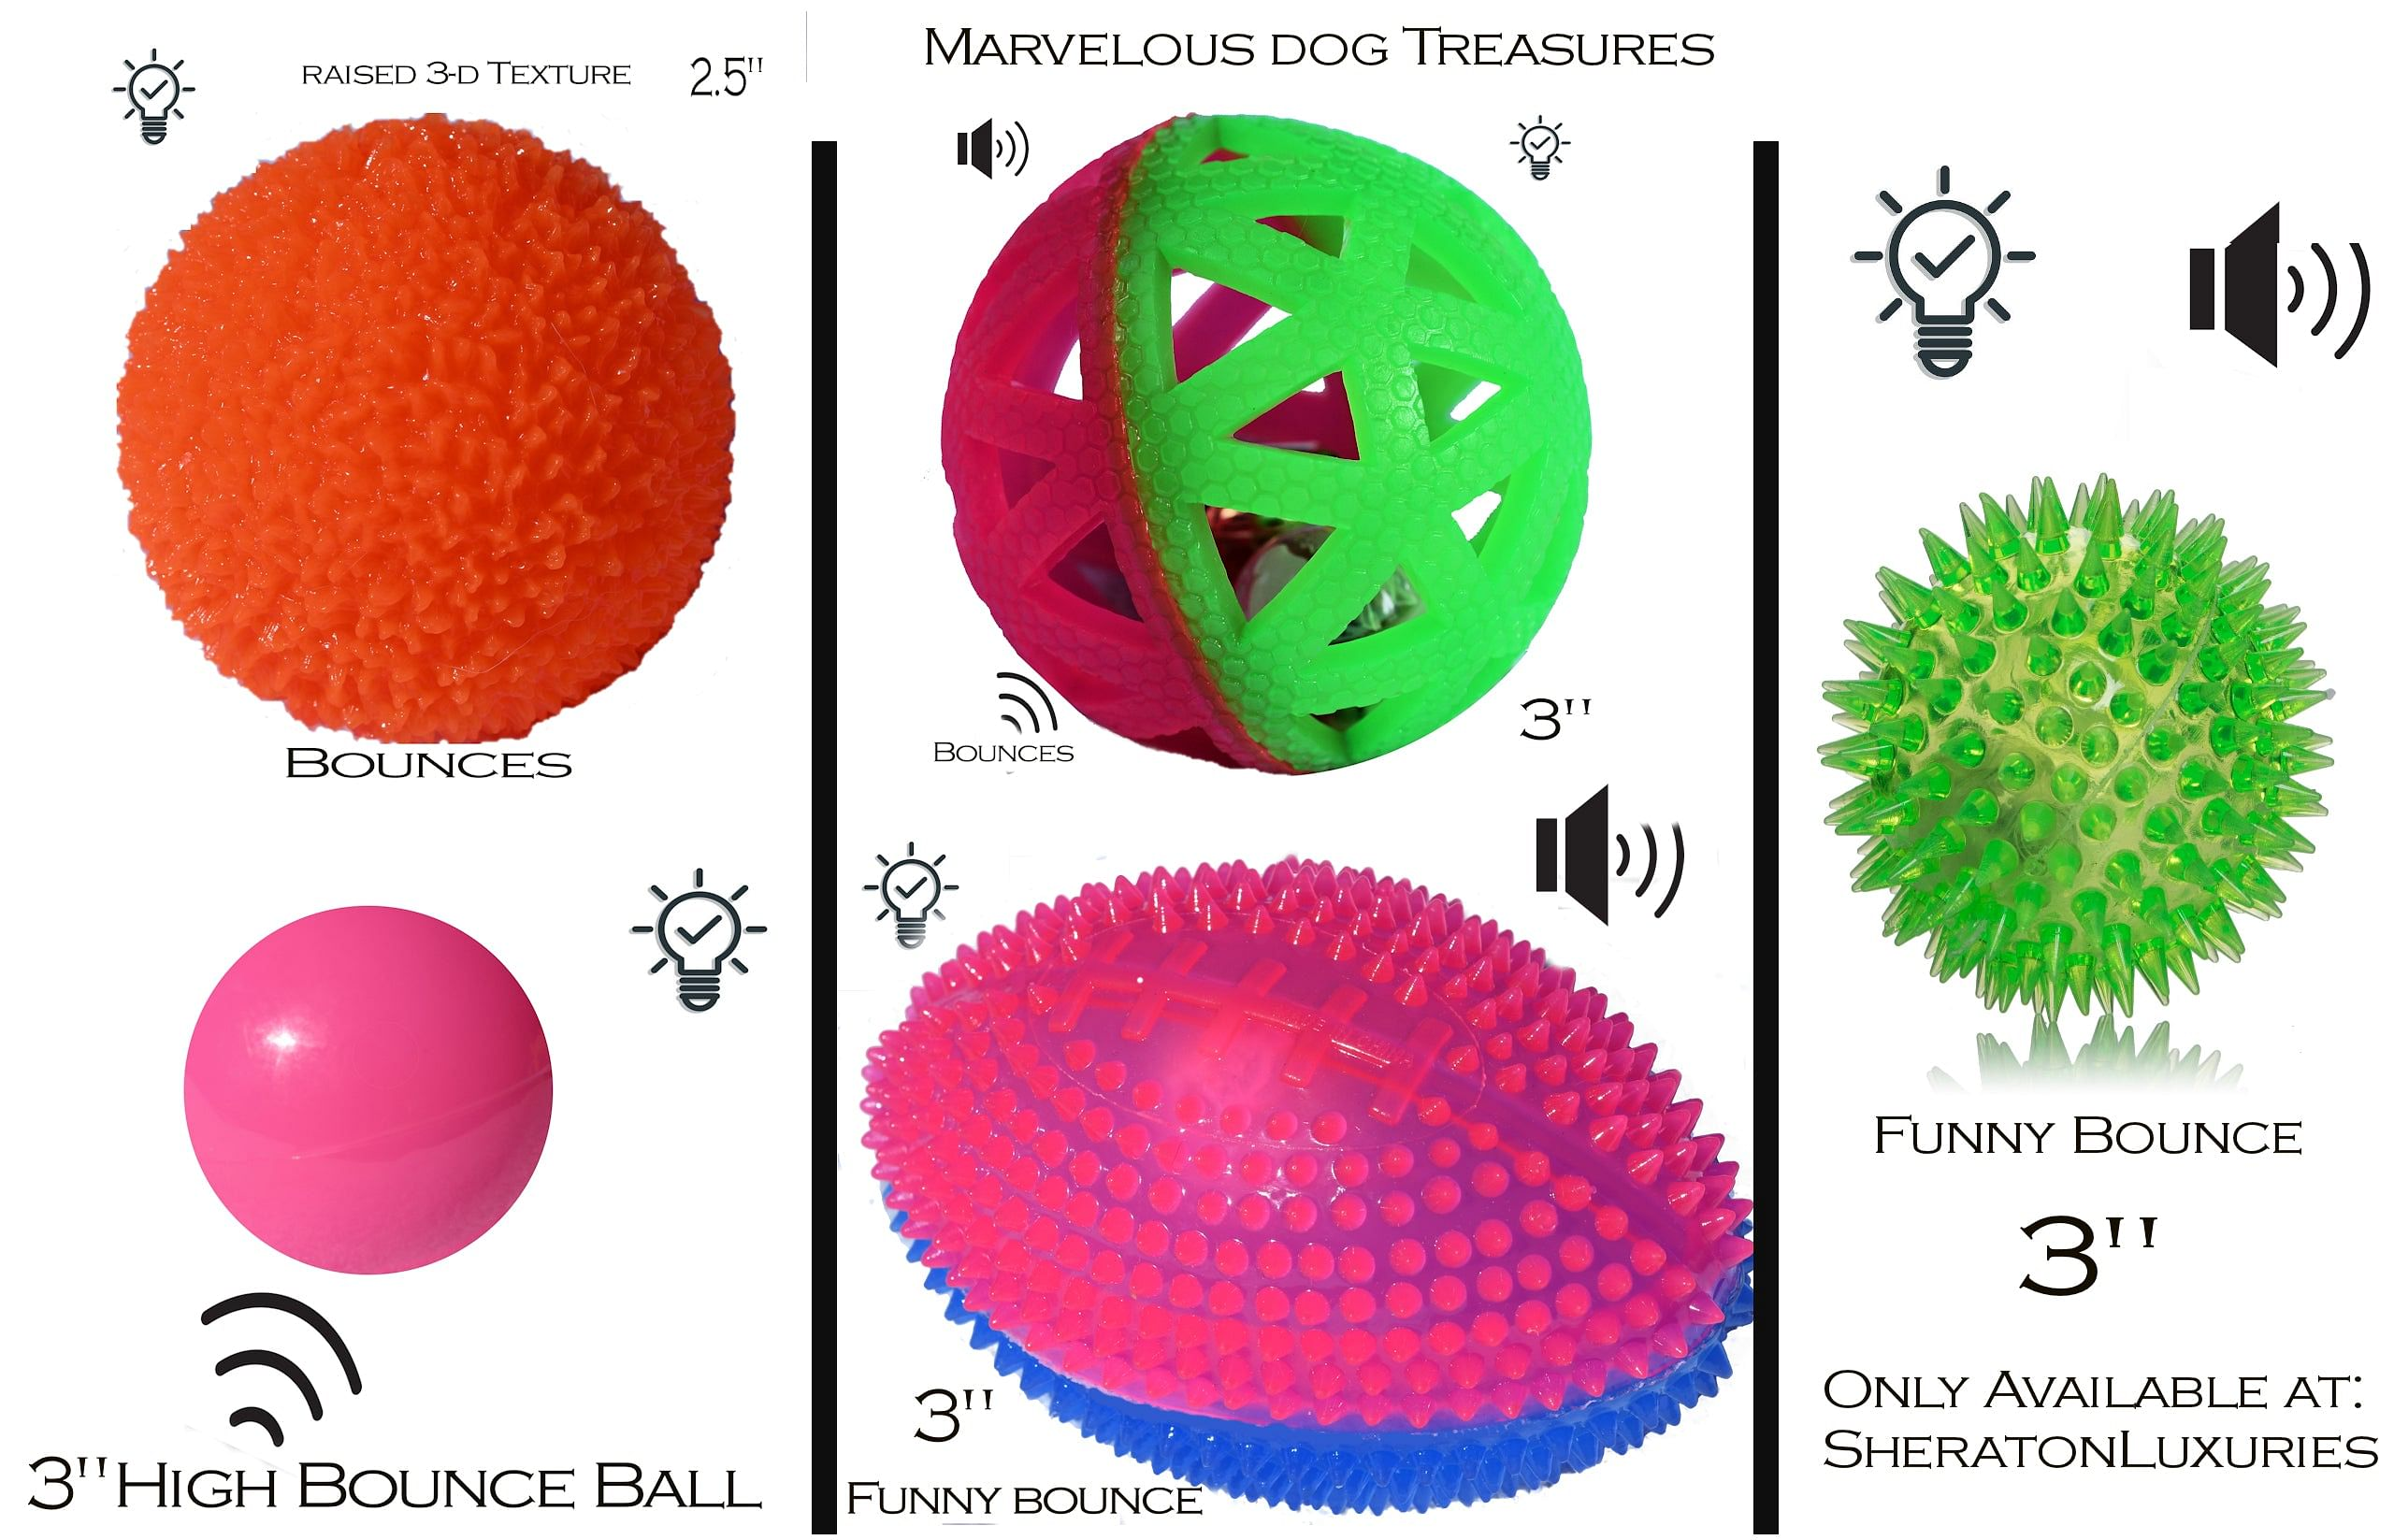 New! Bouncing Light up Dog Ball and Sound Pack Of 5 - Make Playtime Fun With These Unique Dog Toy Treasures